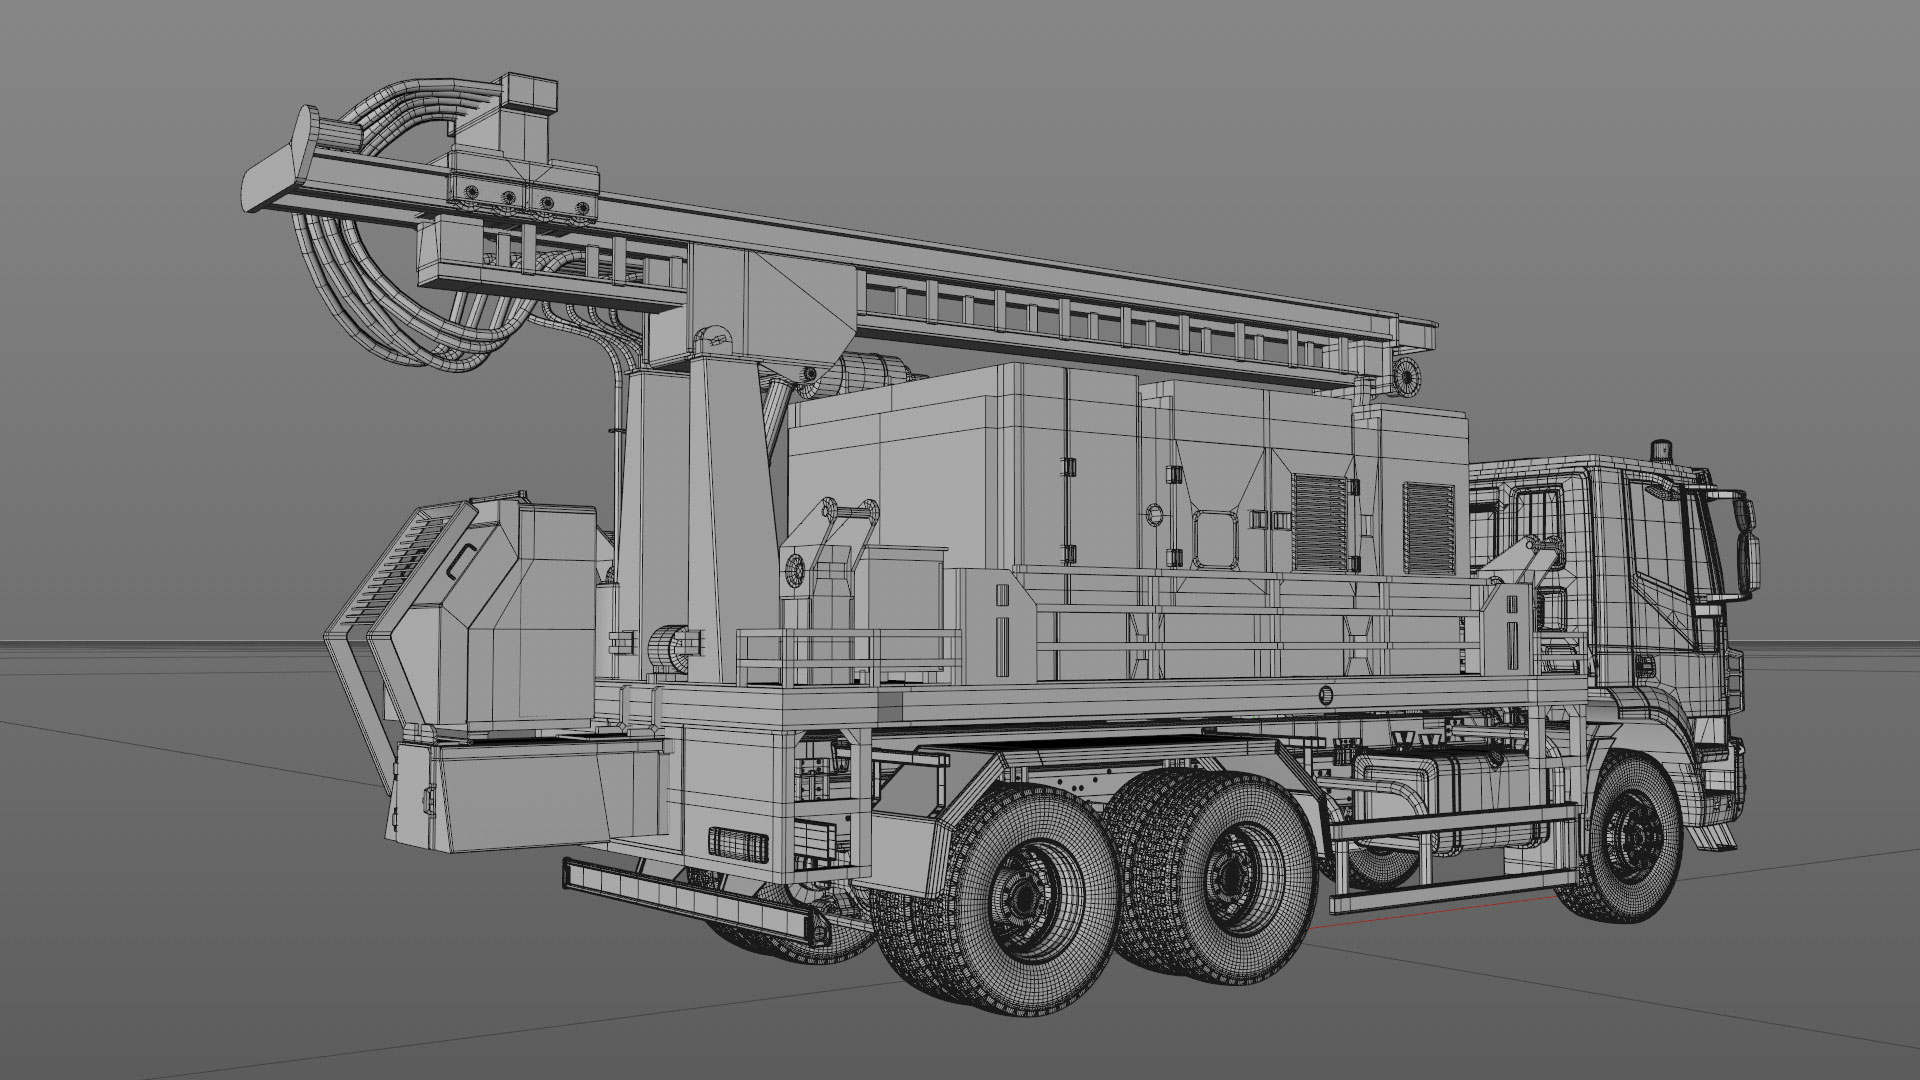 Projects_CharityWater_process_Drilling_Rig_model_02_C4Dviewport